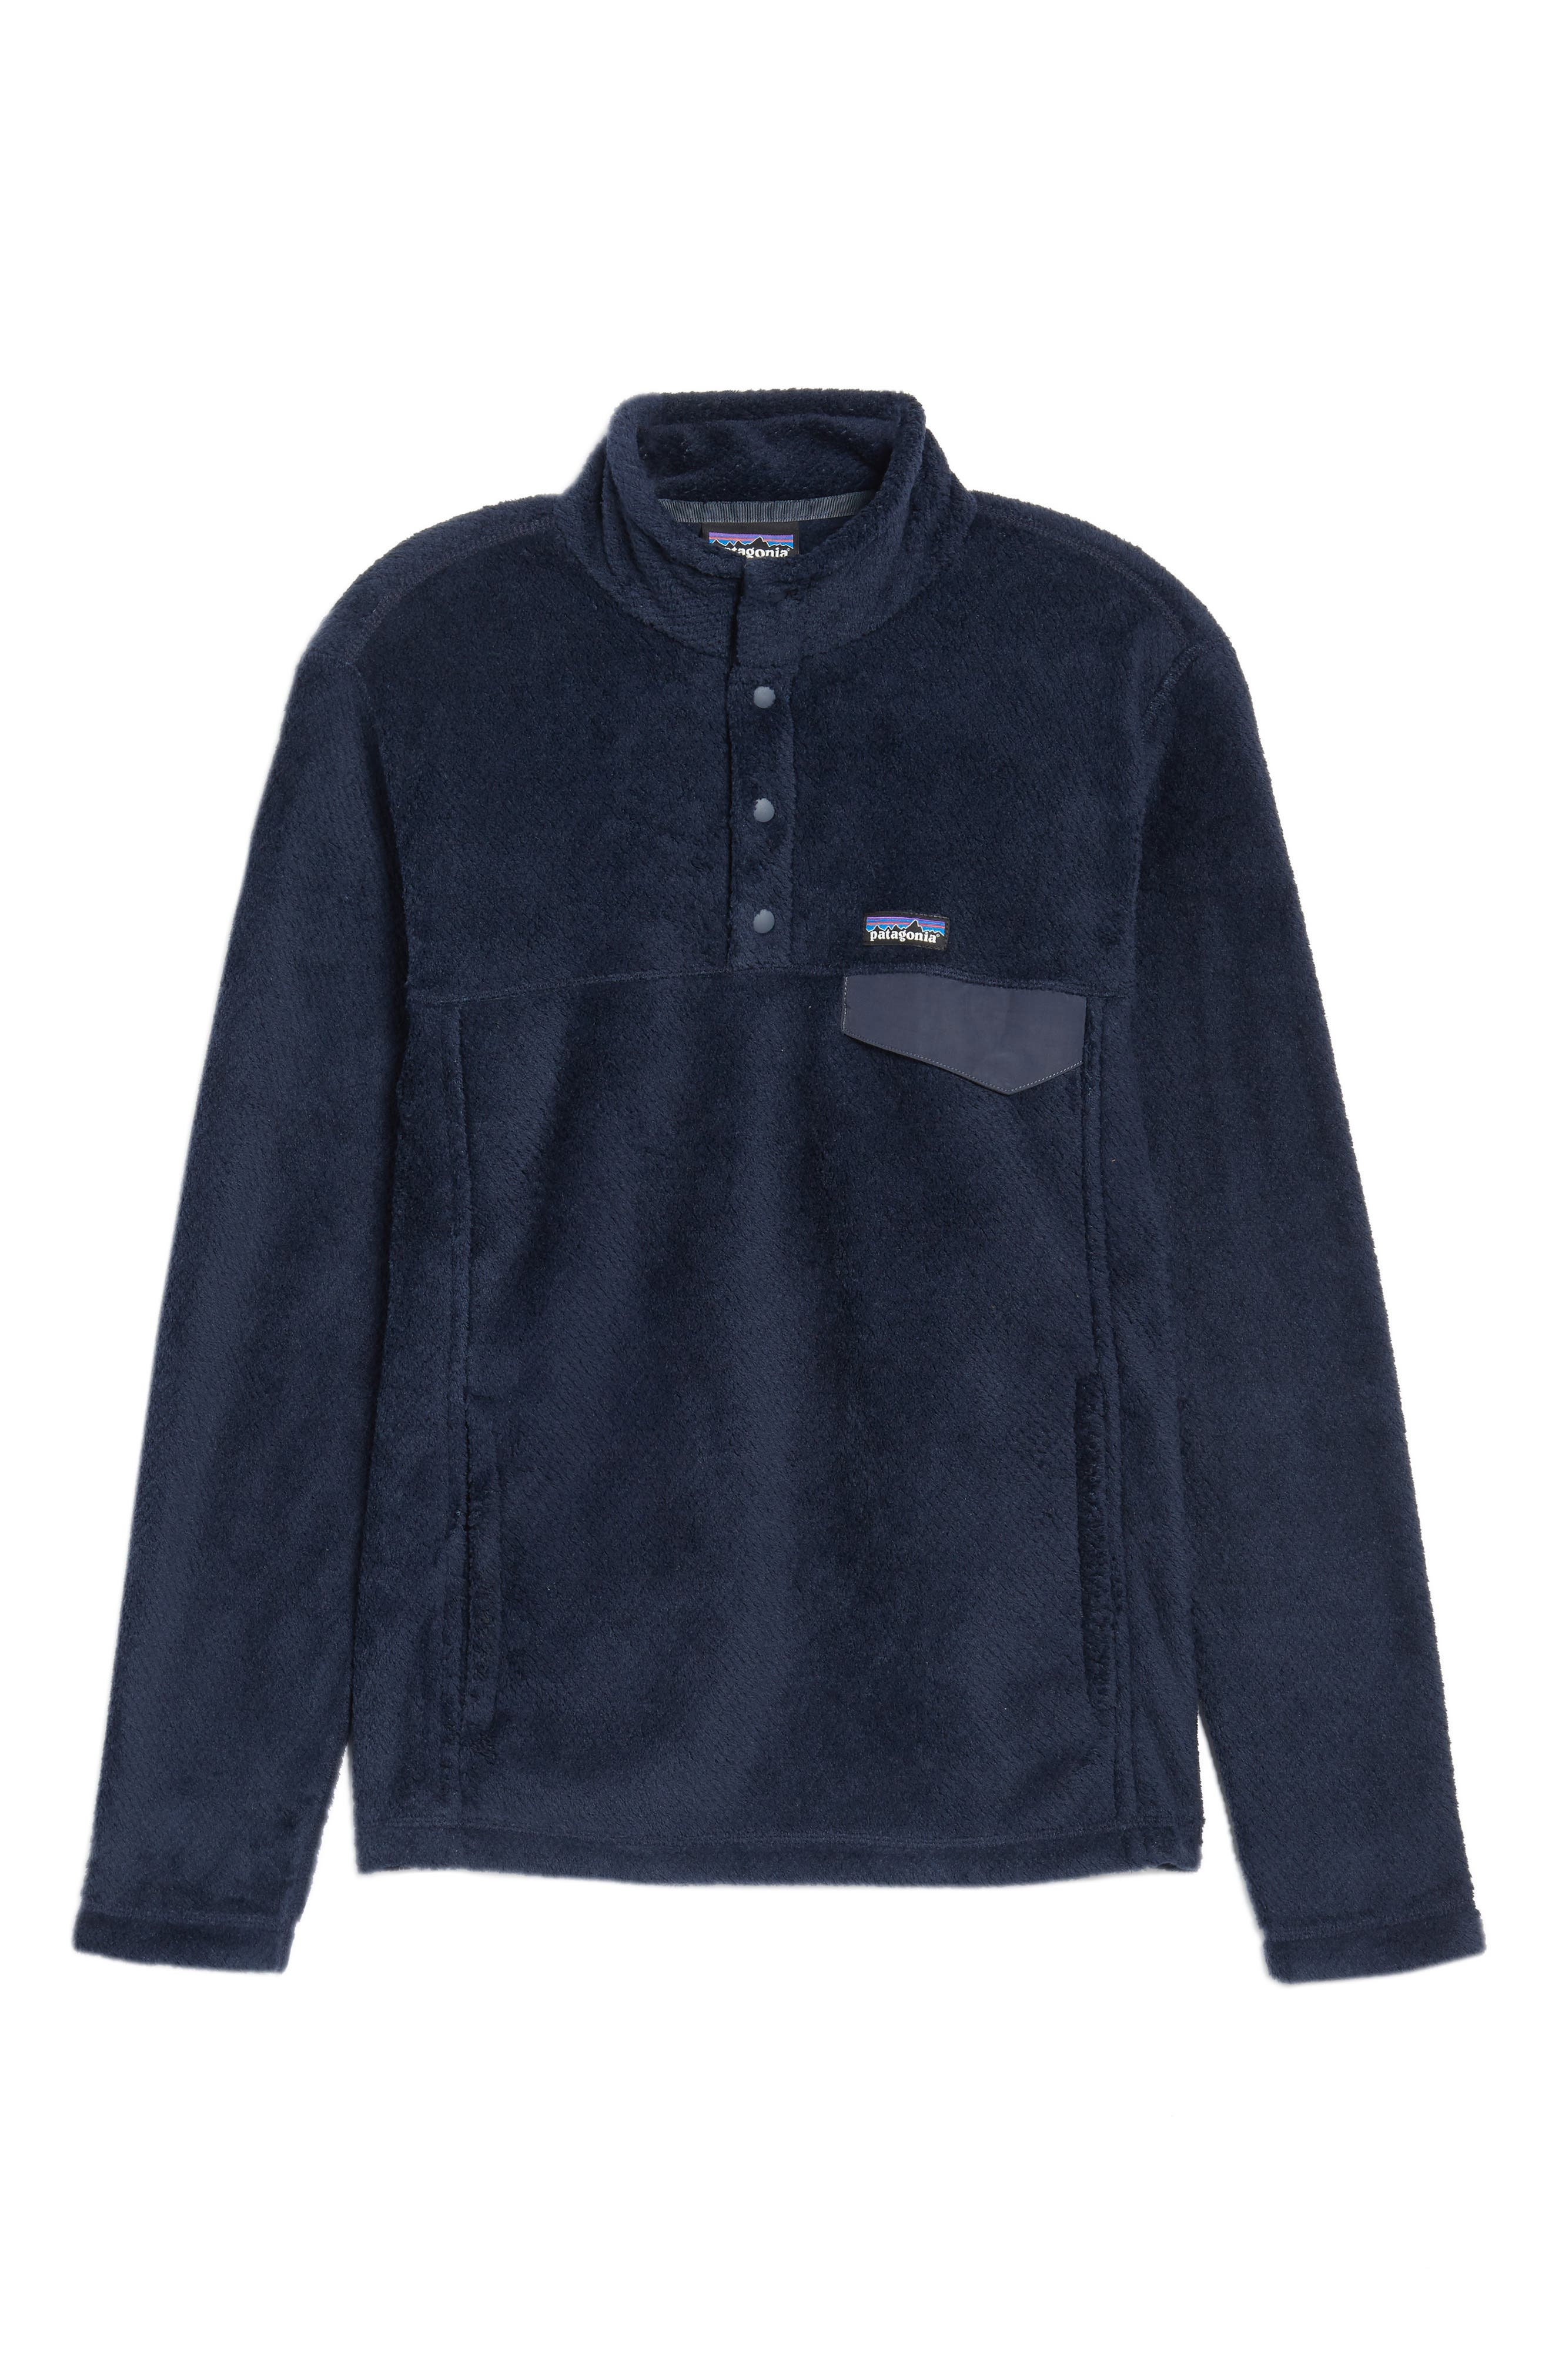 Re-Tool Snap-T<sup>®</sup> Pullover,                             Alternate thumbnail 6, color,                             Navy Blue X-Dye